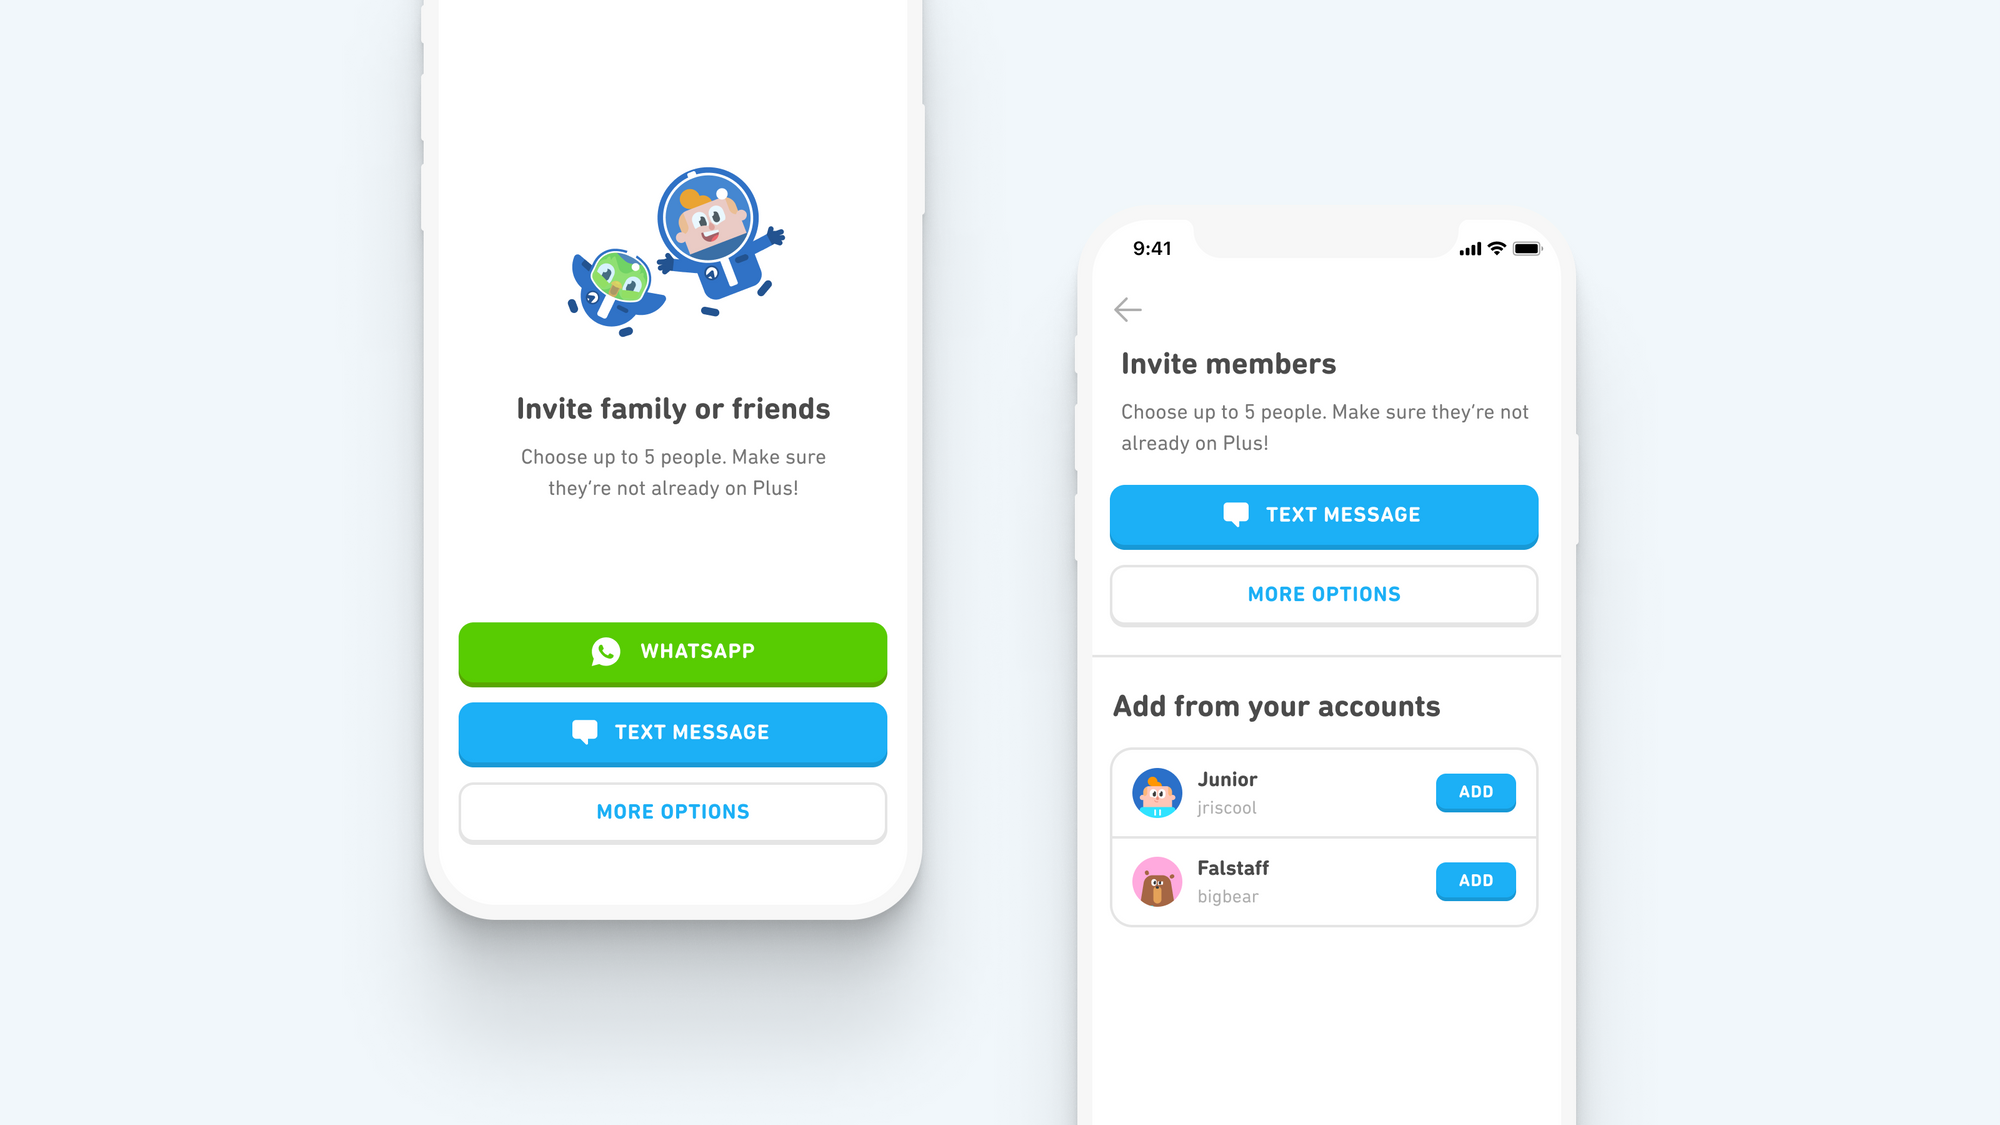 Image of two screenshots. On the left is the screen for inviting people through WhatsApp or text messages by sharing an invite link. On the right is the screen for adding accounts directly.